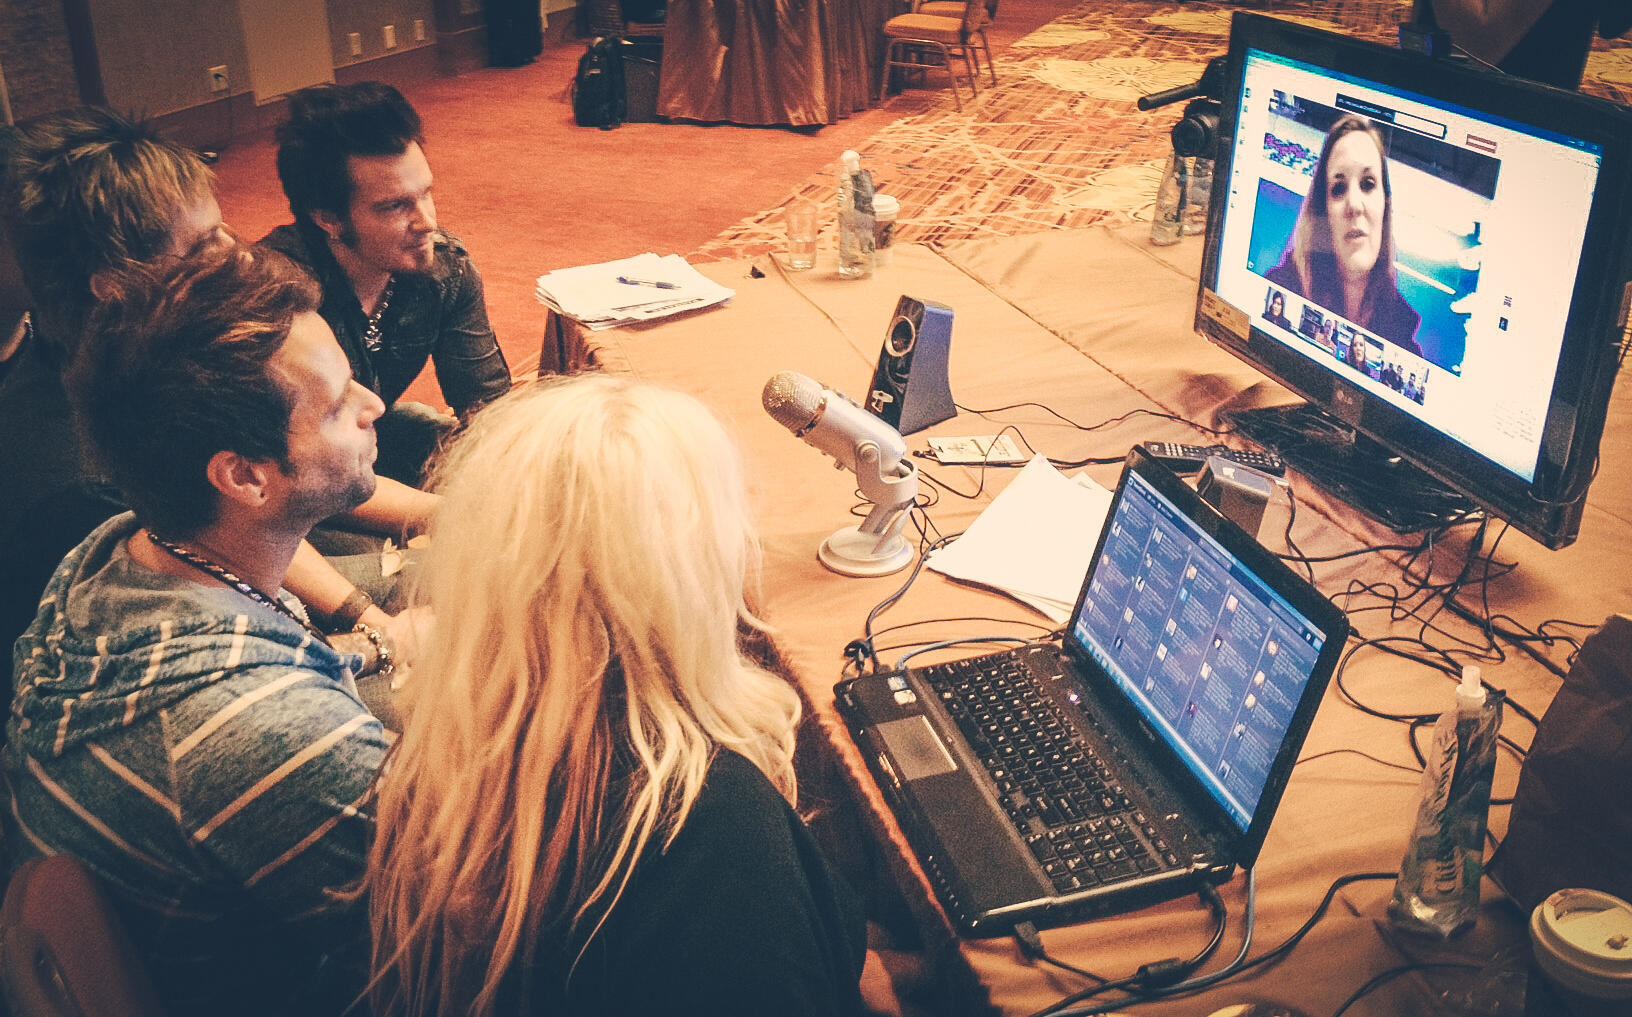 Twitter / parmalee: Hanging out on a live stream ...